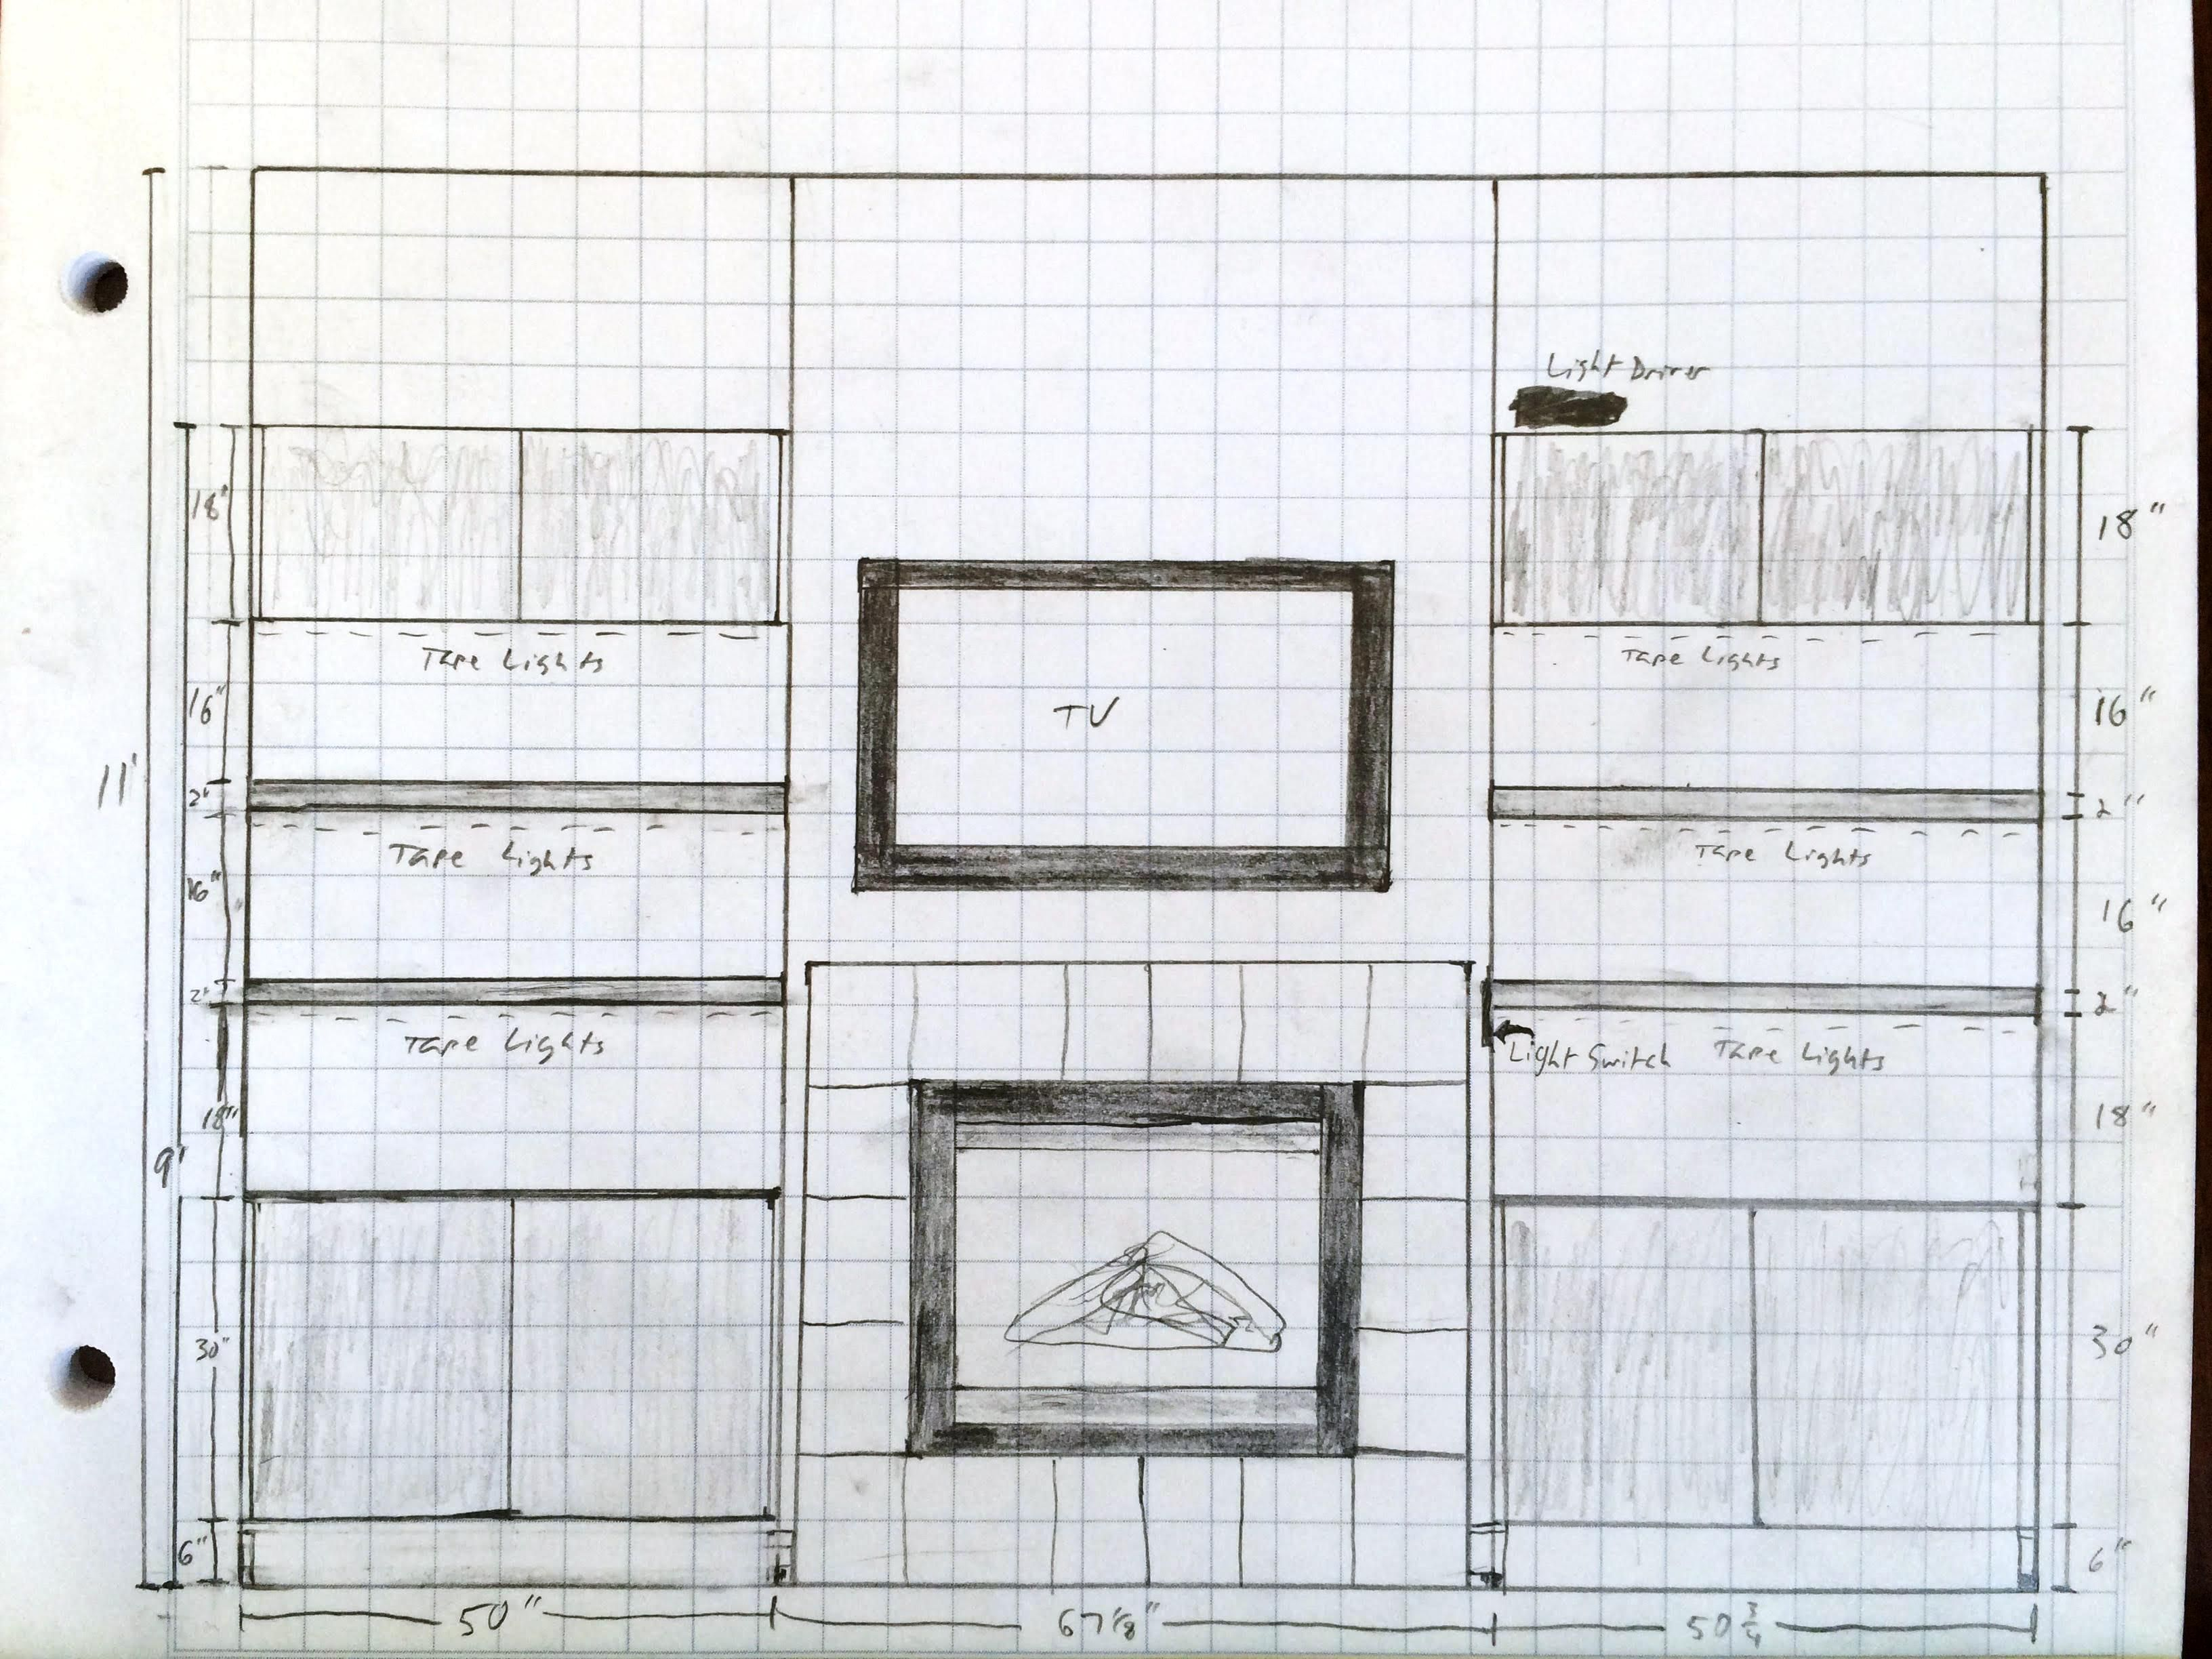 Cadkitchenplans com millwork shop drawings cabinet shop drawings - Simple But Very Detailed And Effective Drawing For Floating Cabinets And Floating Shelves Provided By Client